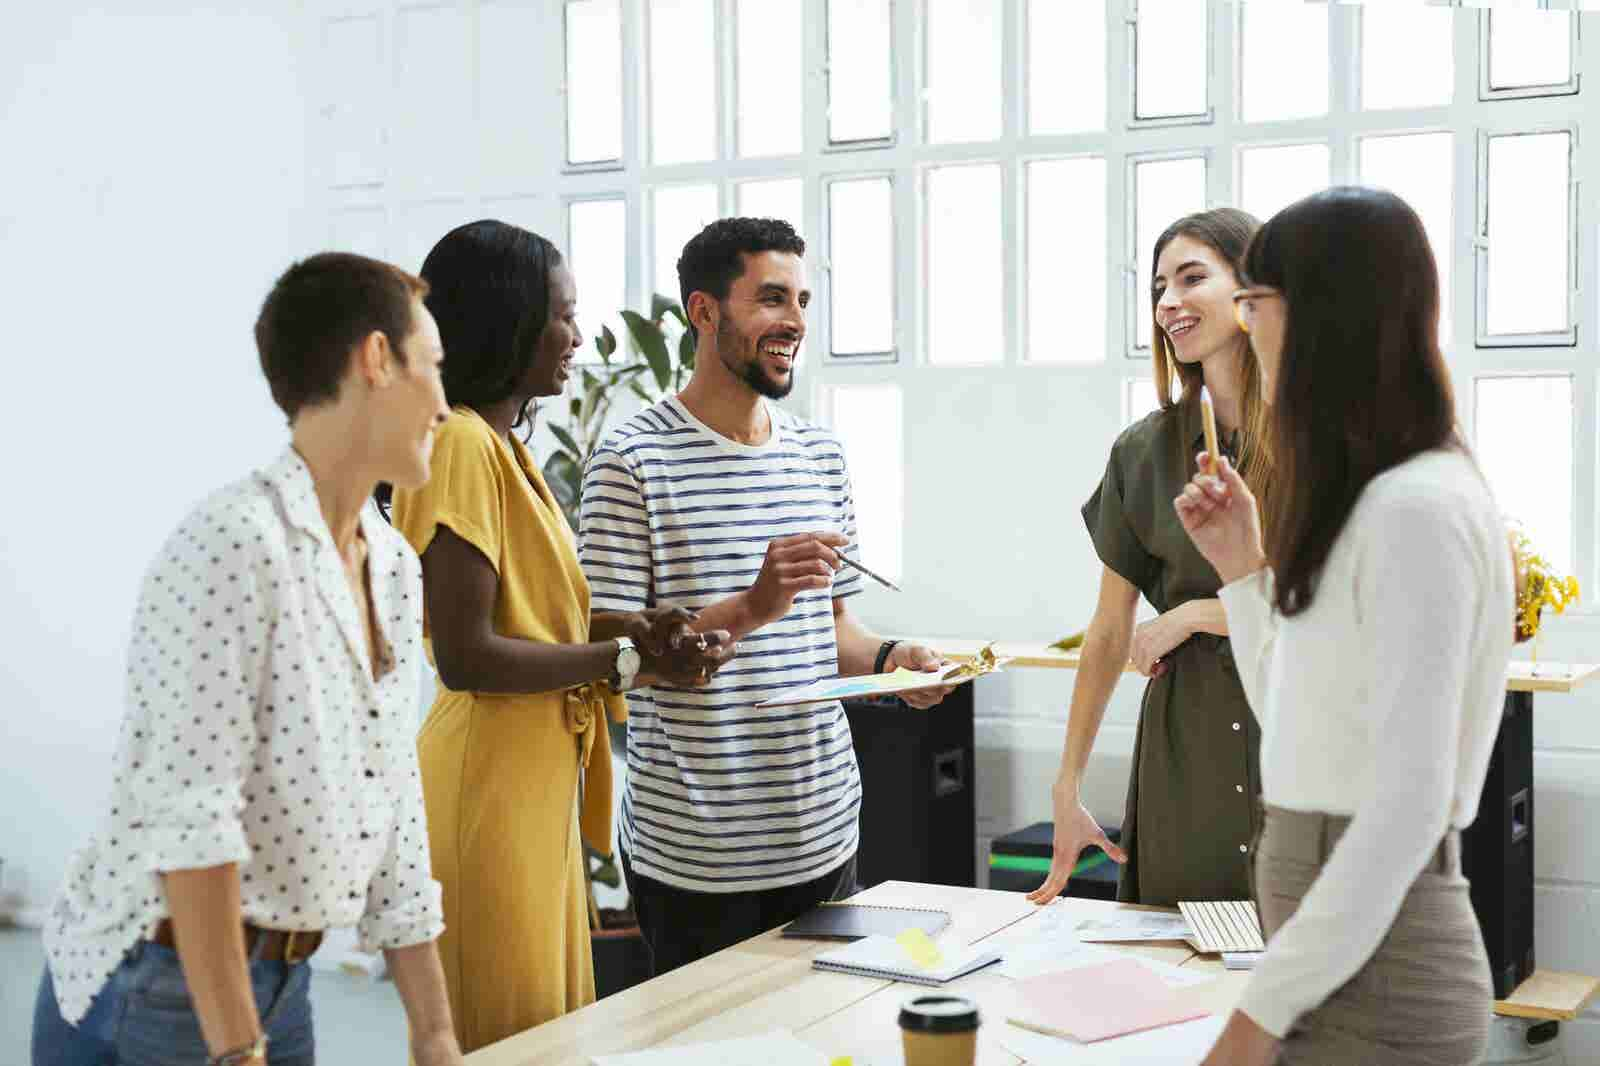 6 Things Professional Leaders Do Every Day